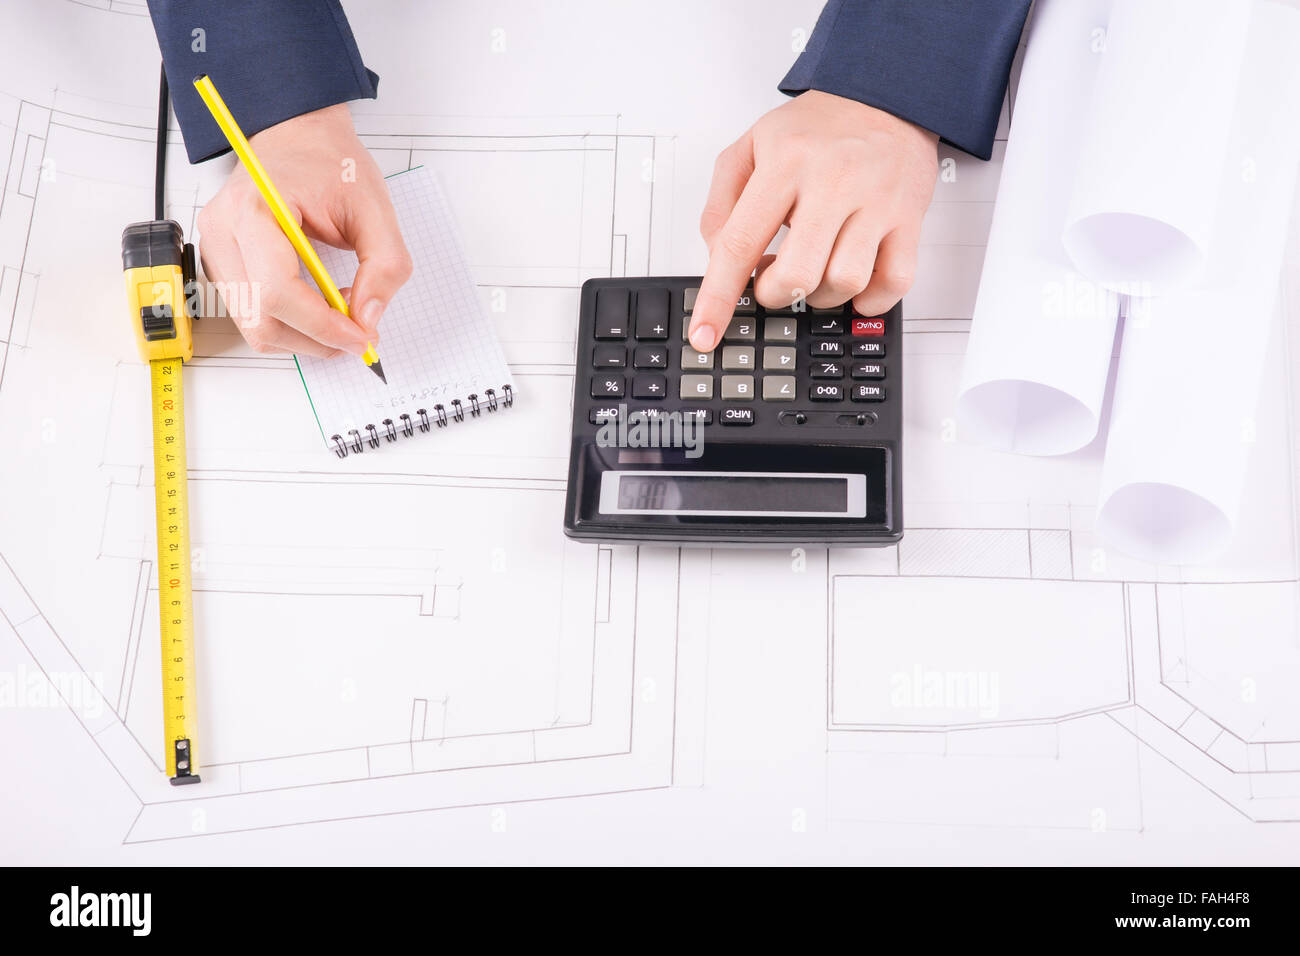 Male hands making measurement calculations. - Stock Image